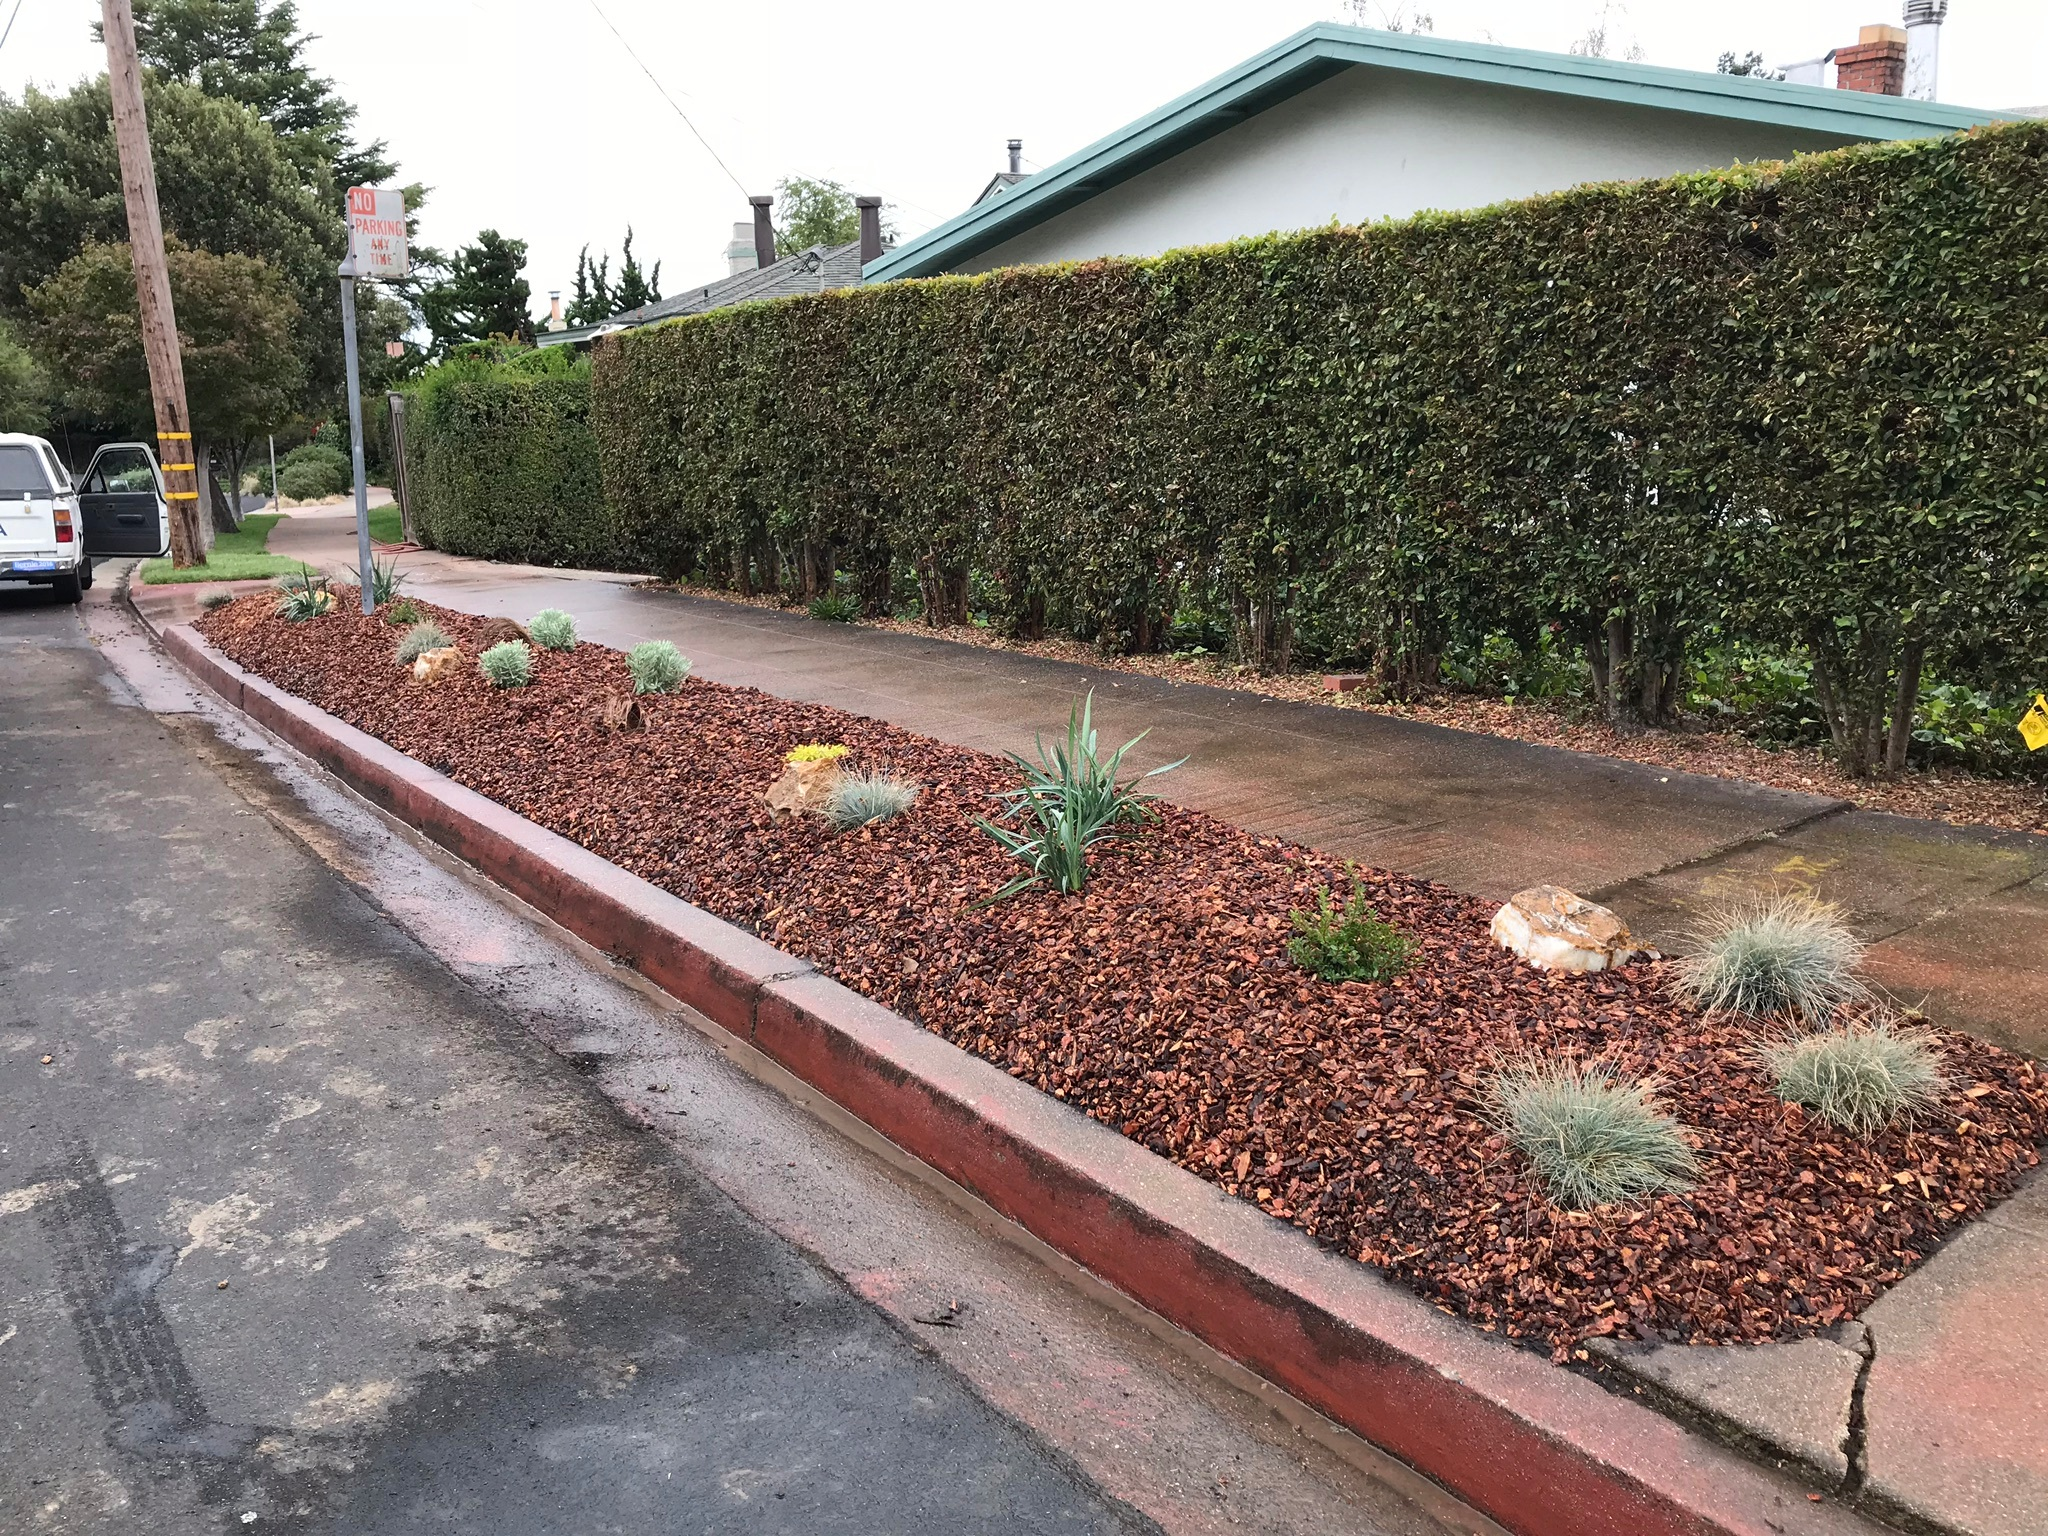 This front parkingstrip is in full sun and in the hills where deer frequently walk by. I chose plants which are low maintenance, deer resistant, and drought tolerant. We sheet mulched to keep down the weeds then planted.